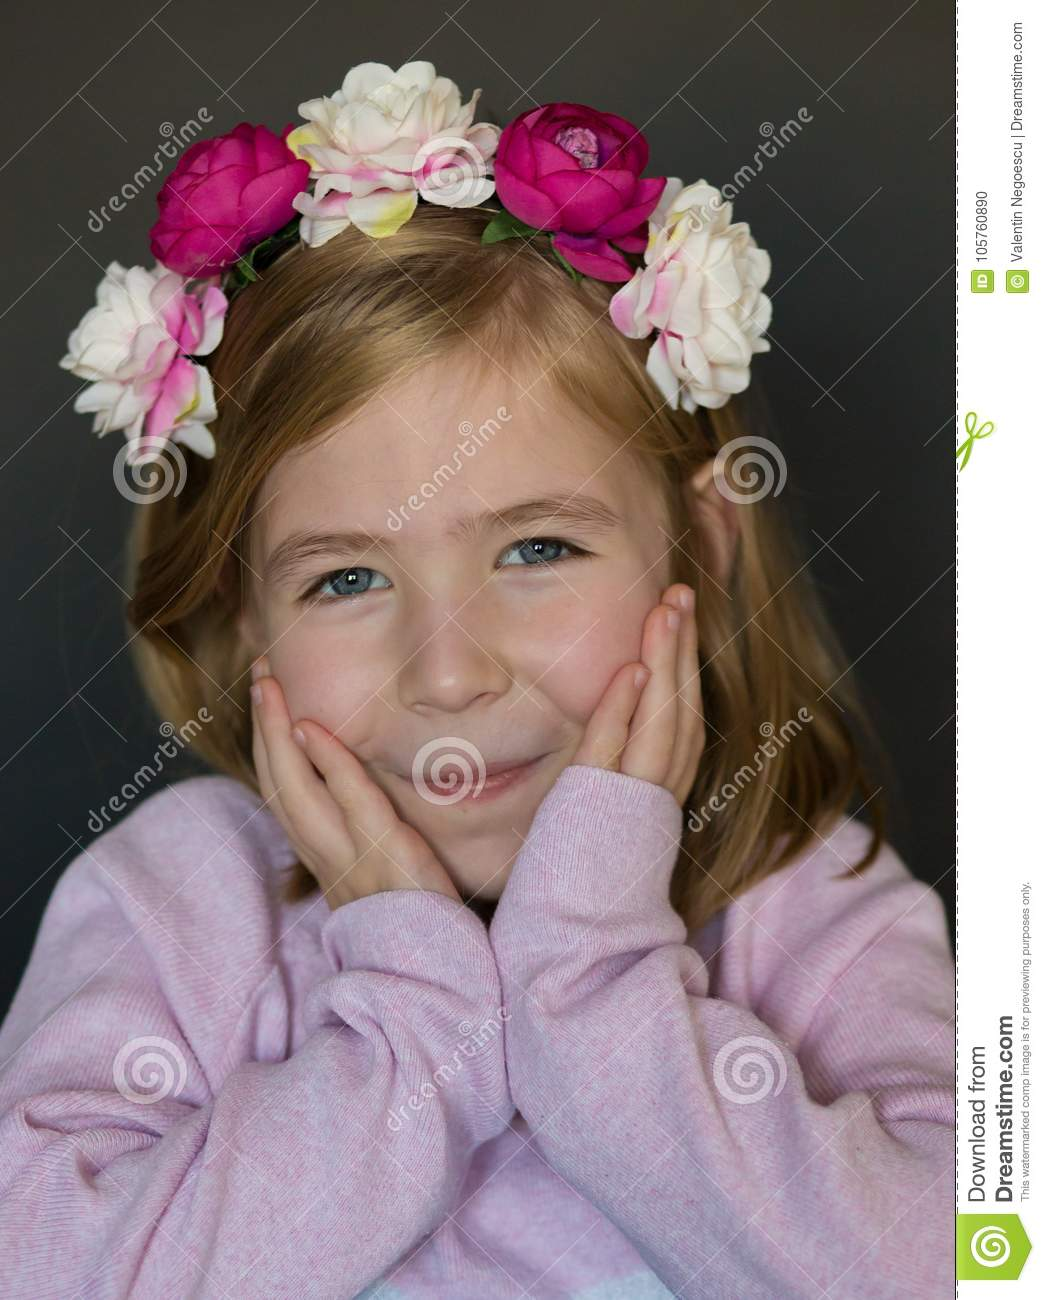 A cute little girl with flowers crown on her head stock photo a cute little girl with flowers crown on her head izmirmasajfo